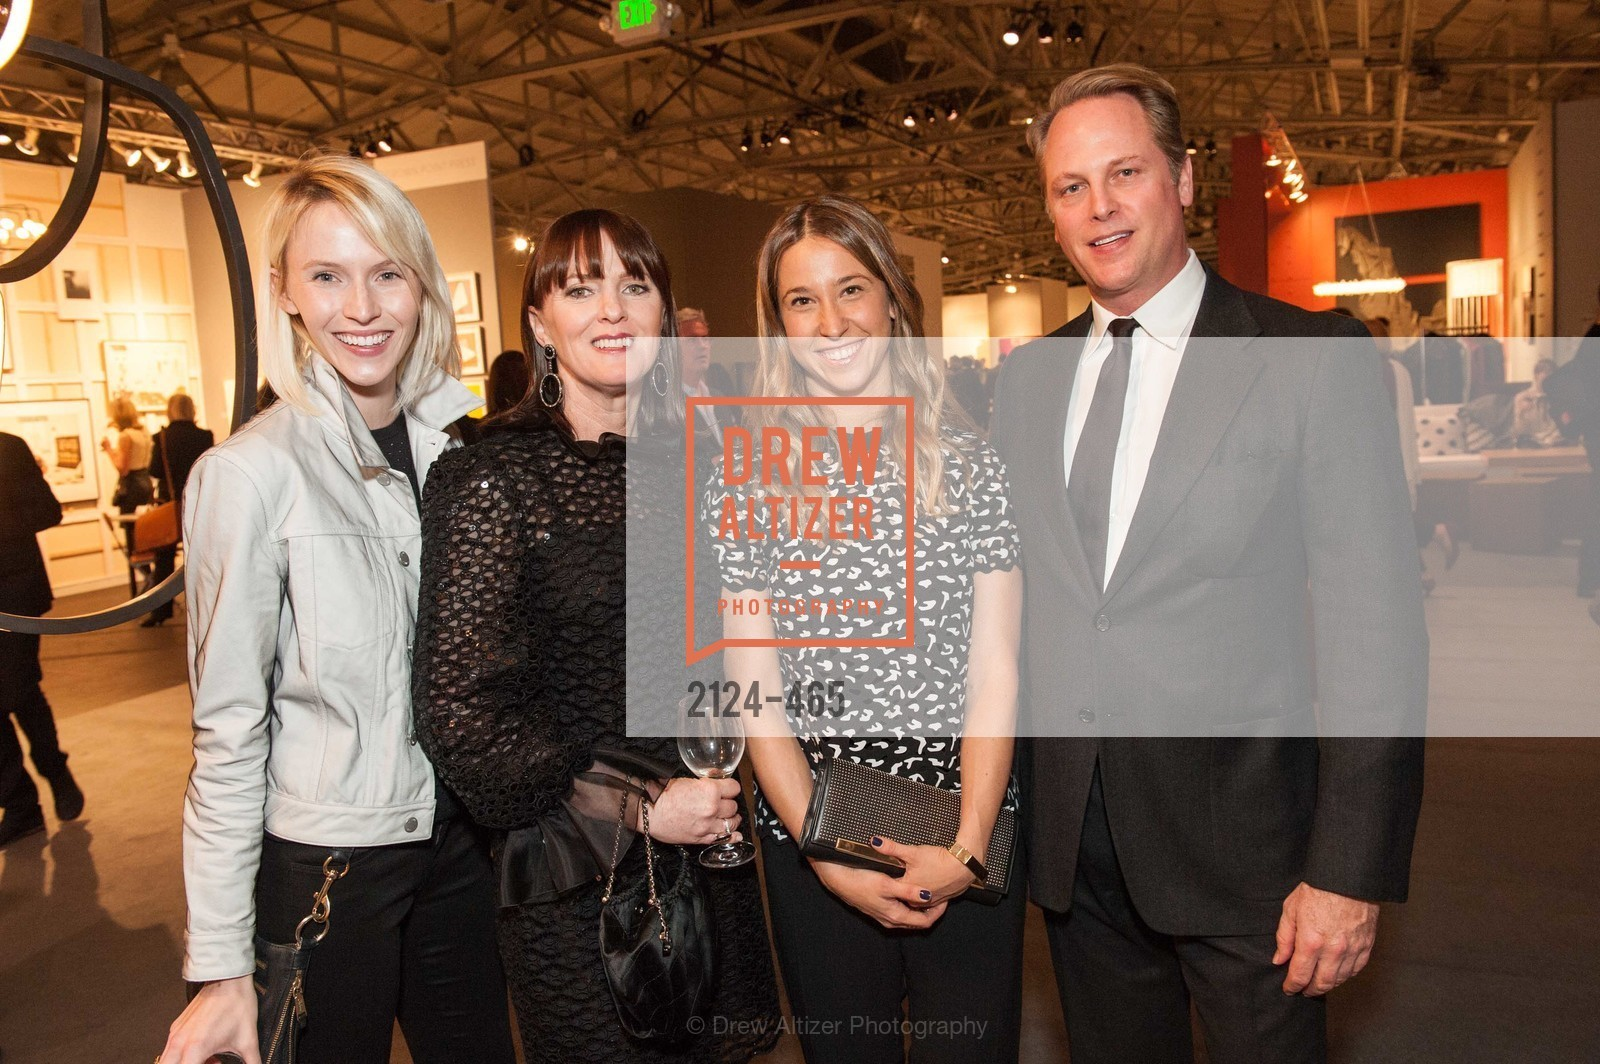 Stephanie Bolger, Allison Speer, Meredith Darrow, Todd Merrill, FOG Design + Art Preview Gala, US. US, January 16th, 2014,Drew Altizer, Drew Altizer Photography, full-service agency, private events, San Francisco photographer, photographer california